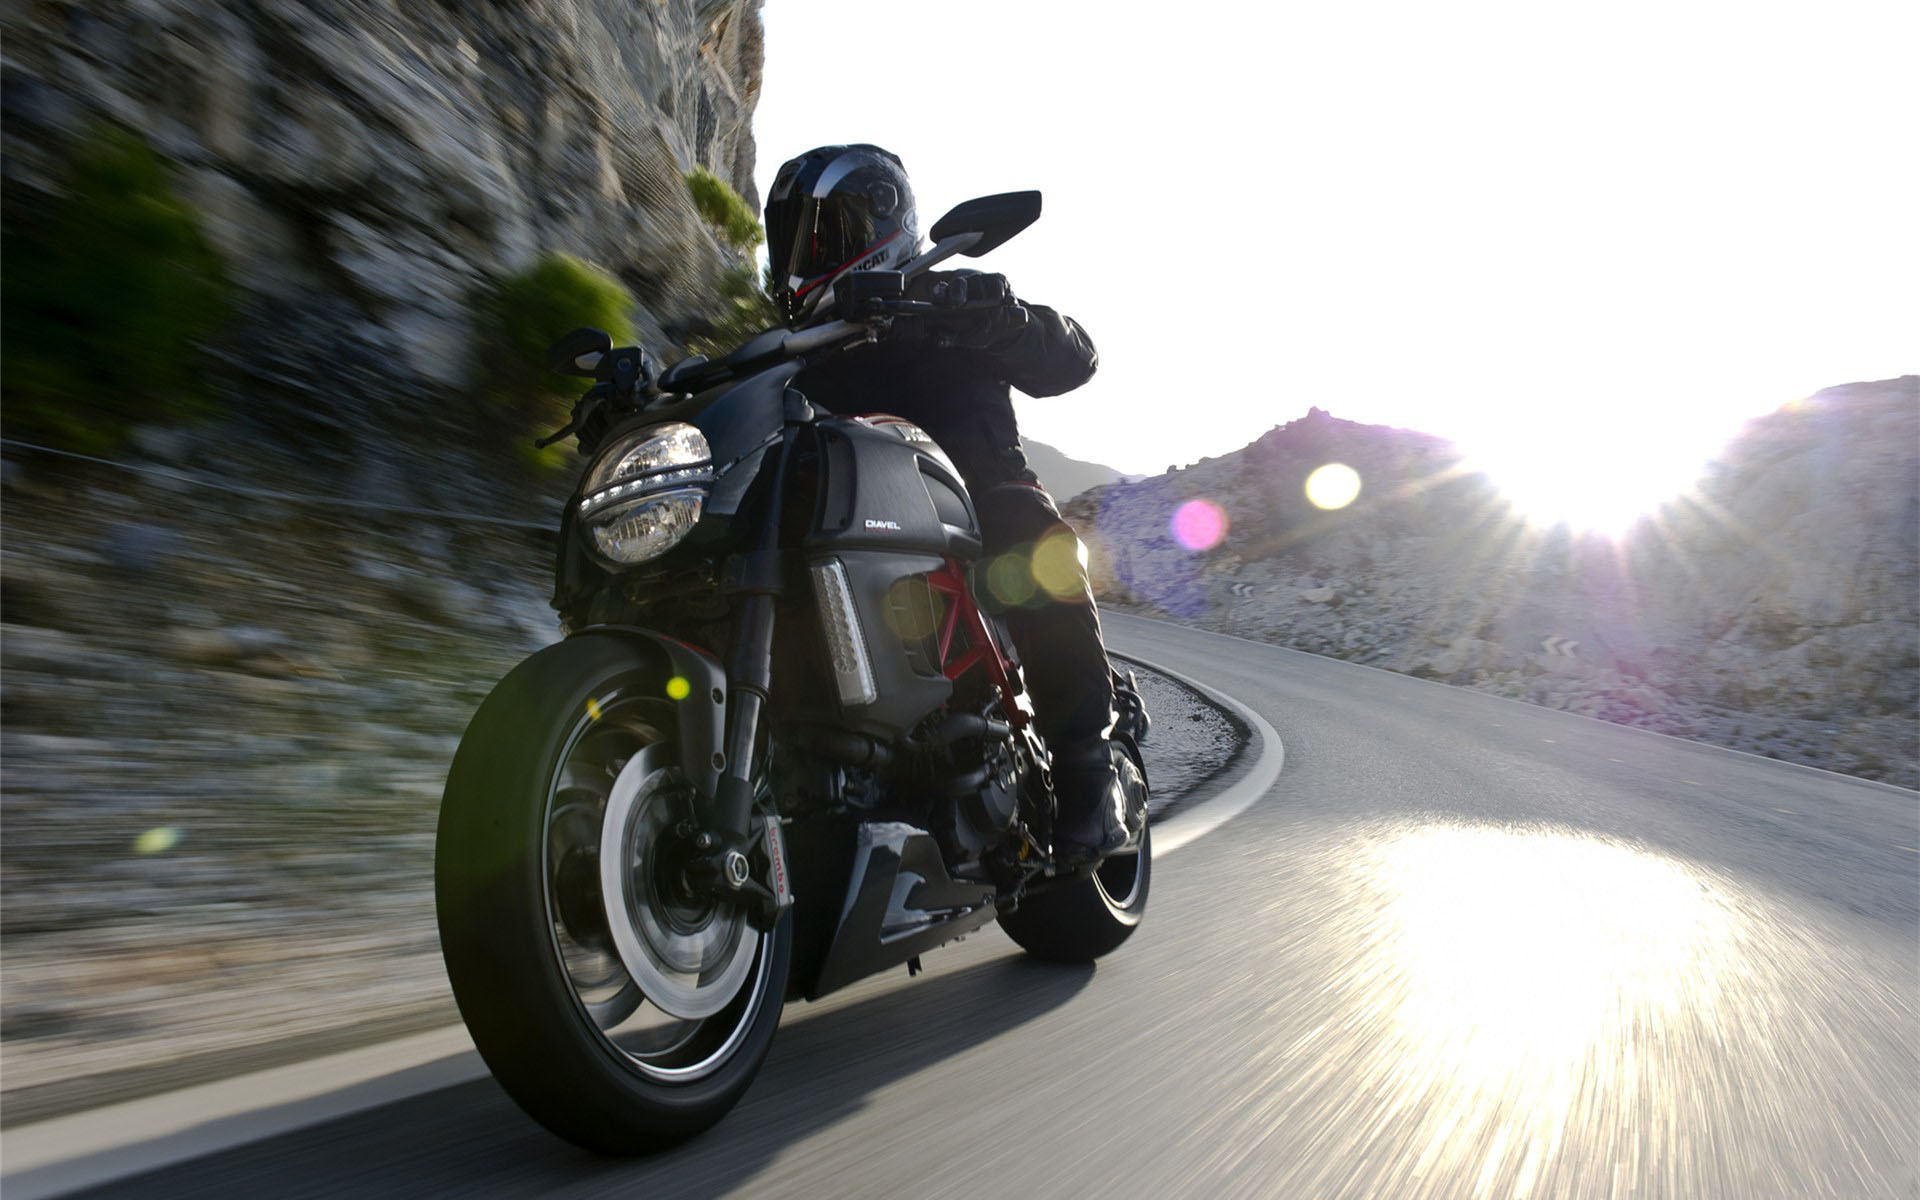 motocycles_new_bike_on_the_road_ducati_diavel__072542_